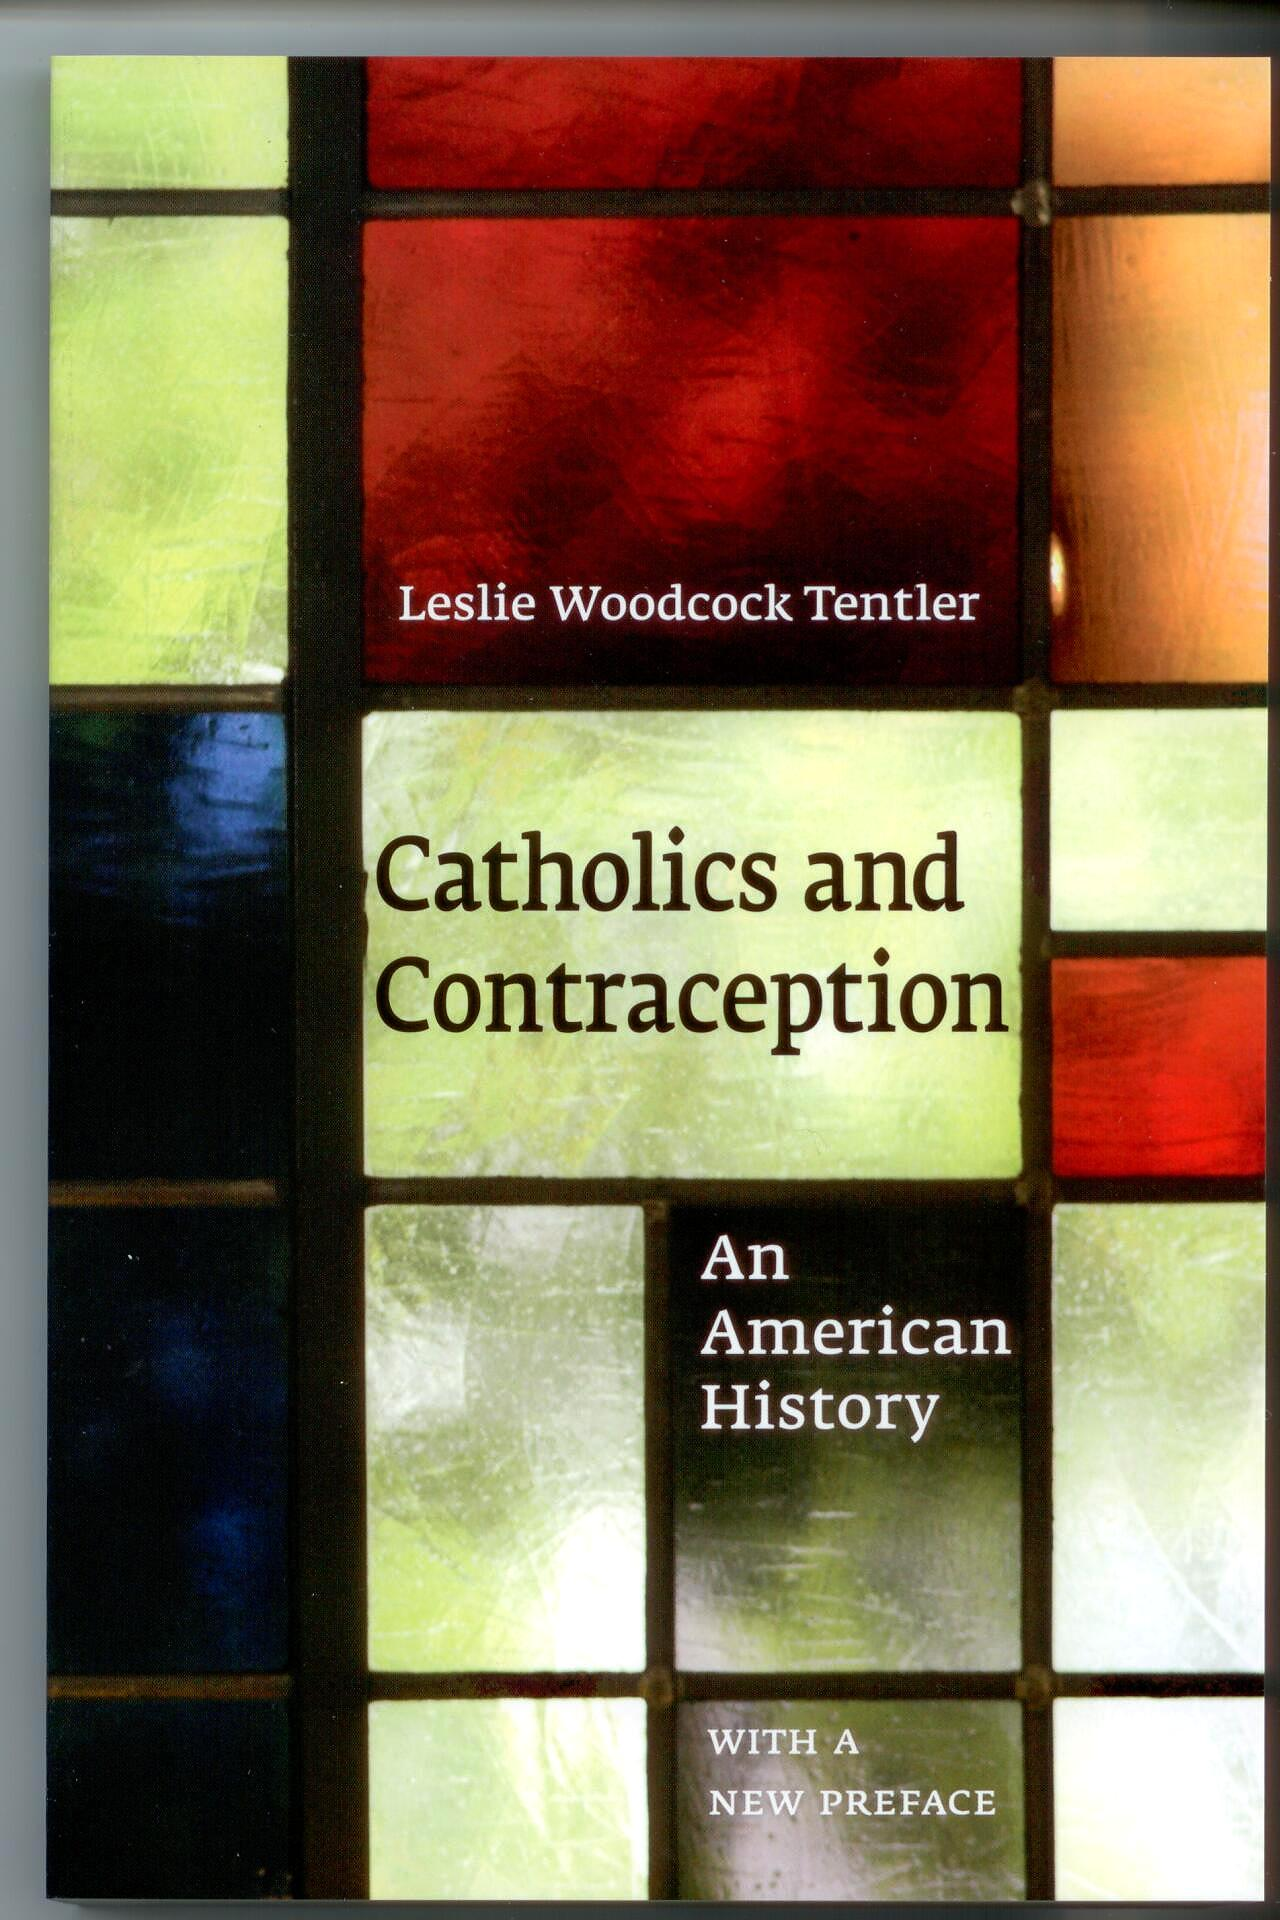 Detailed history of the issue of contraception in the US Catholic church. Ends with a ringing call for leadership from US bishops in this area.